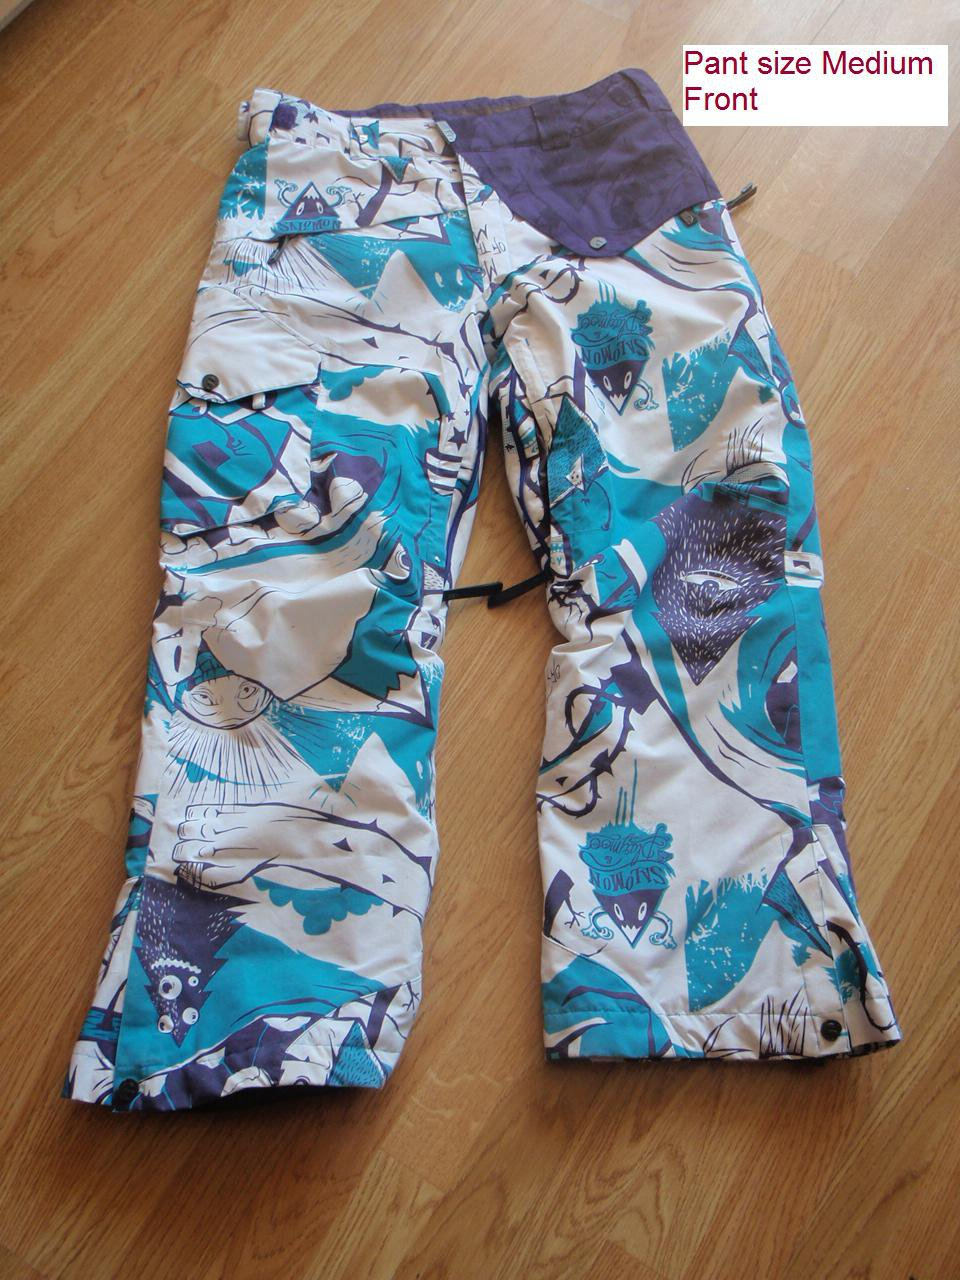 Front of the pant